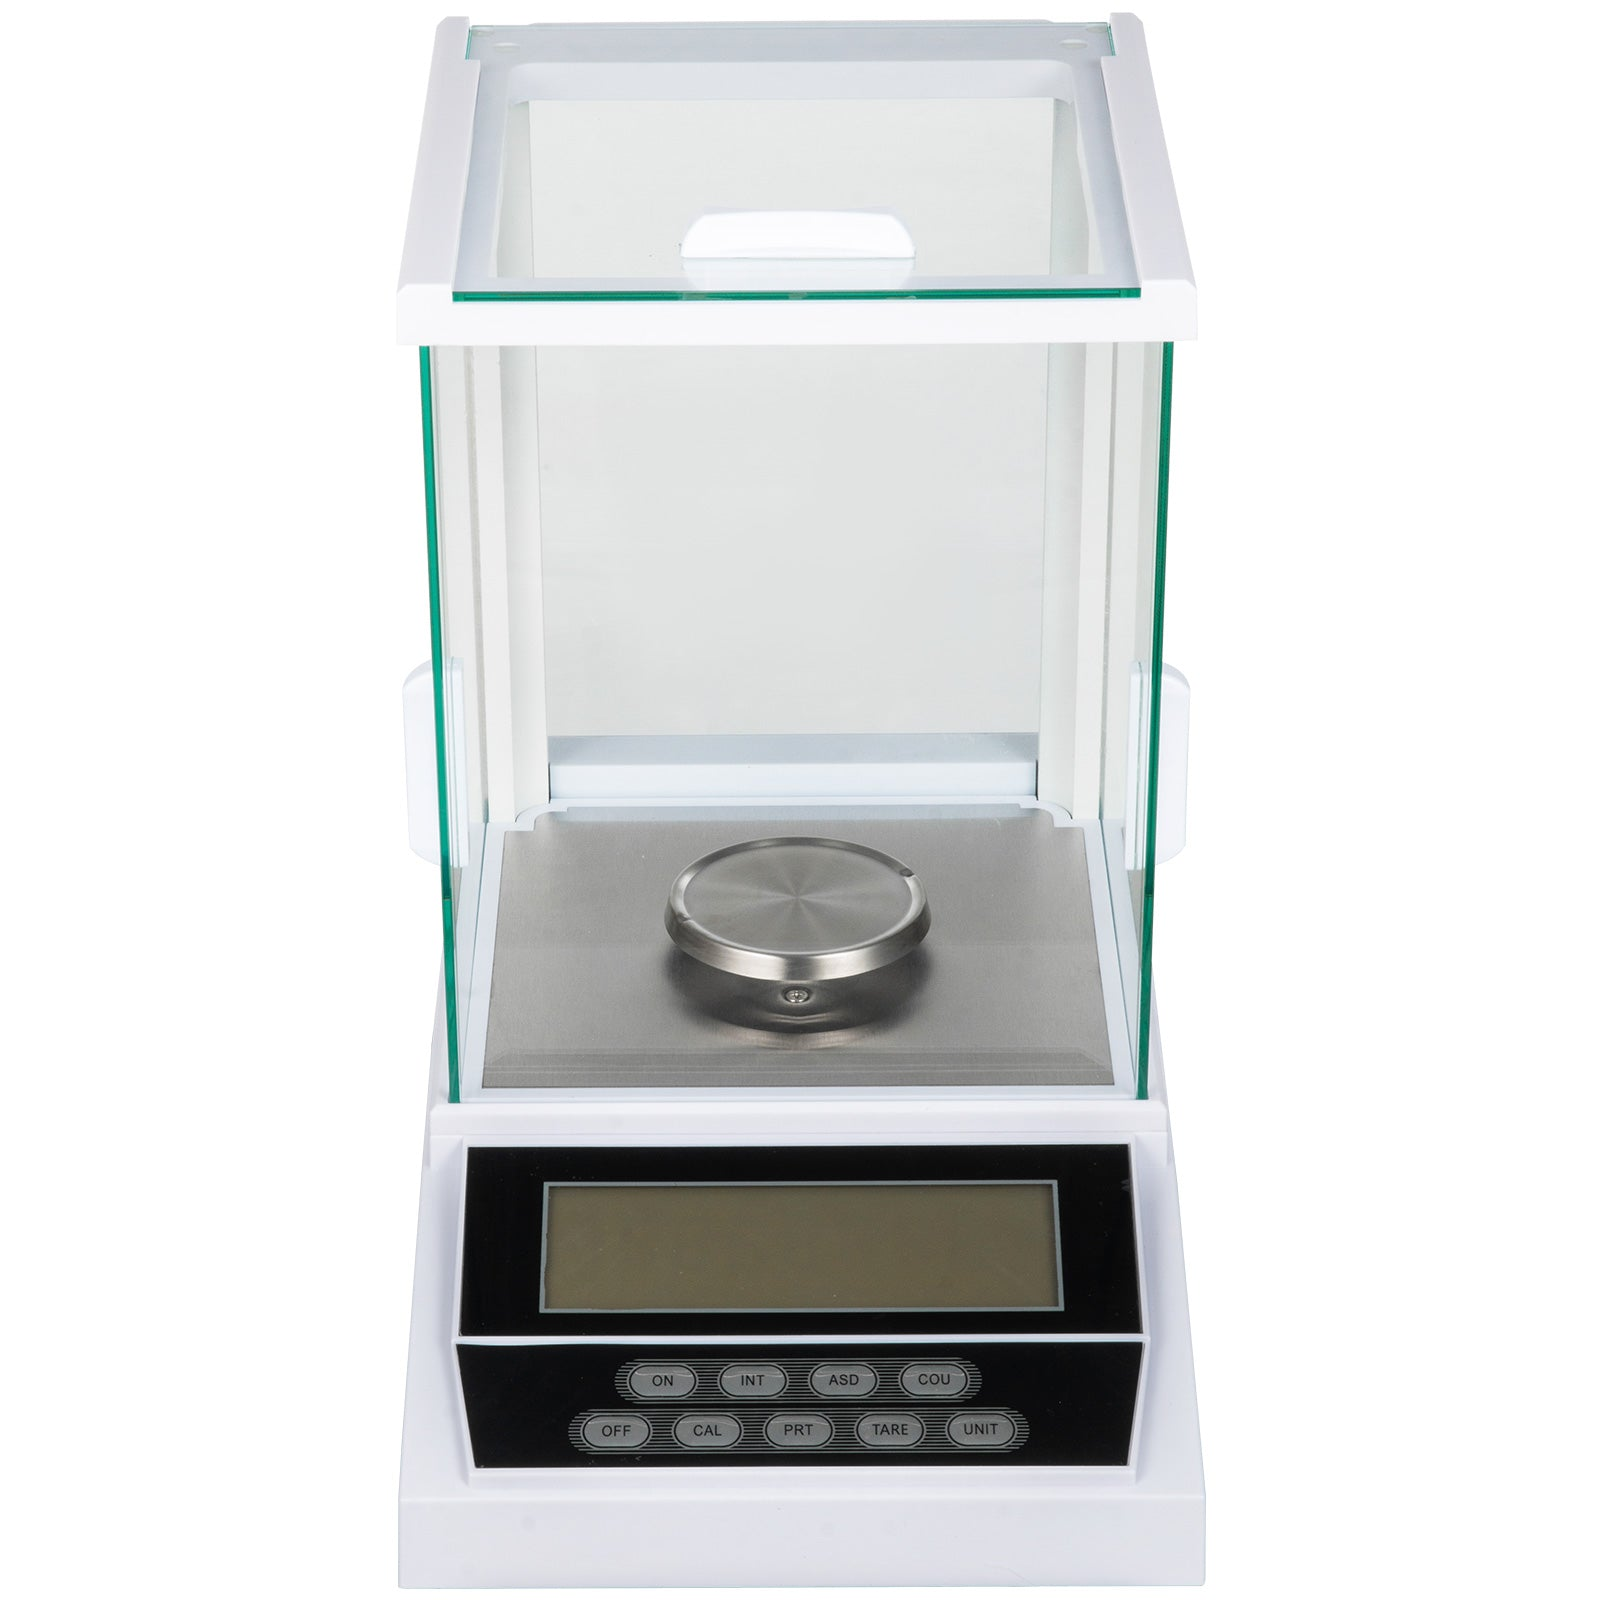 Equipment Balance Analytique 220g X 0.1mg Balances Analytiques De Laboratoire